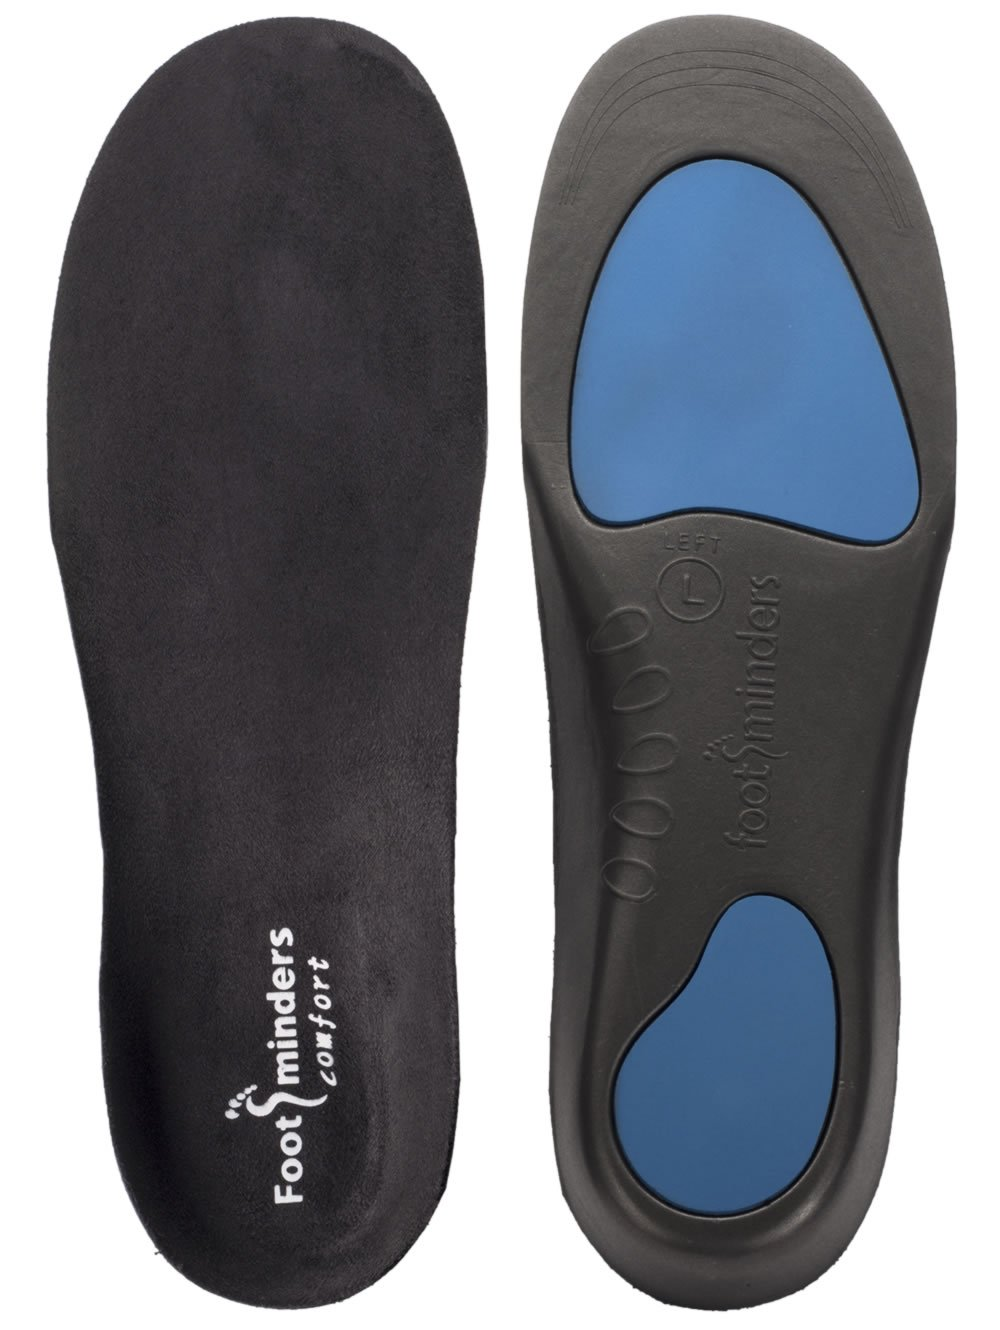 Footminders Comfort Orthotic Arch Support Insoles for Sport Shoes and Work Boots (Pair) (Large: Men 9½ -11 Women 10½ - 12) - Relieve Foot Pain Due to Flat Feet and Plantar Fasciitis by Footminders